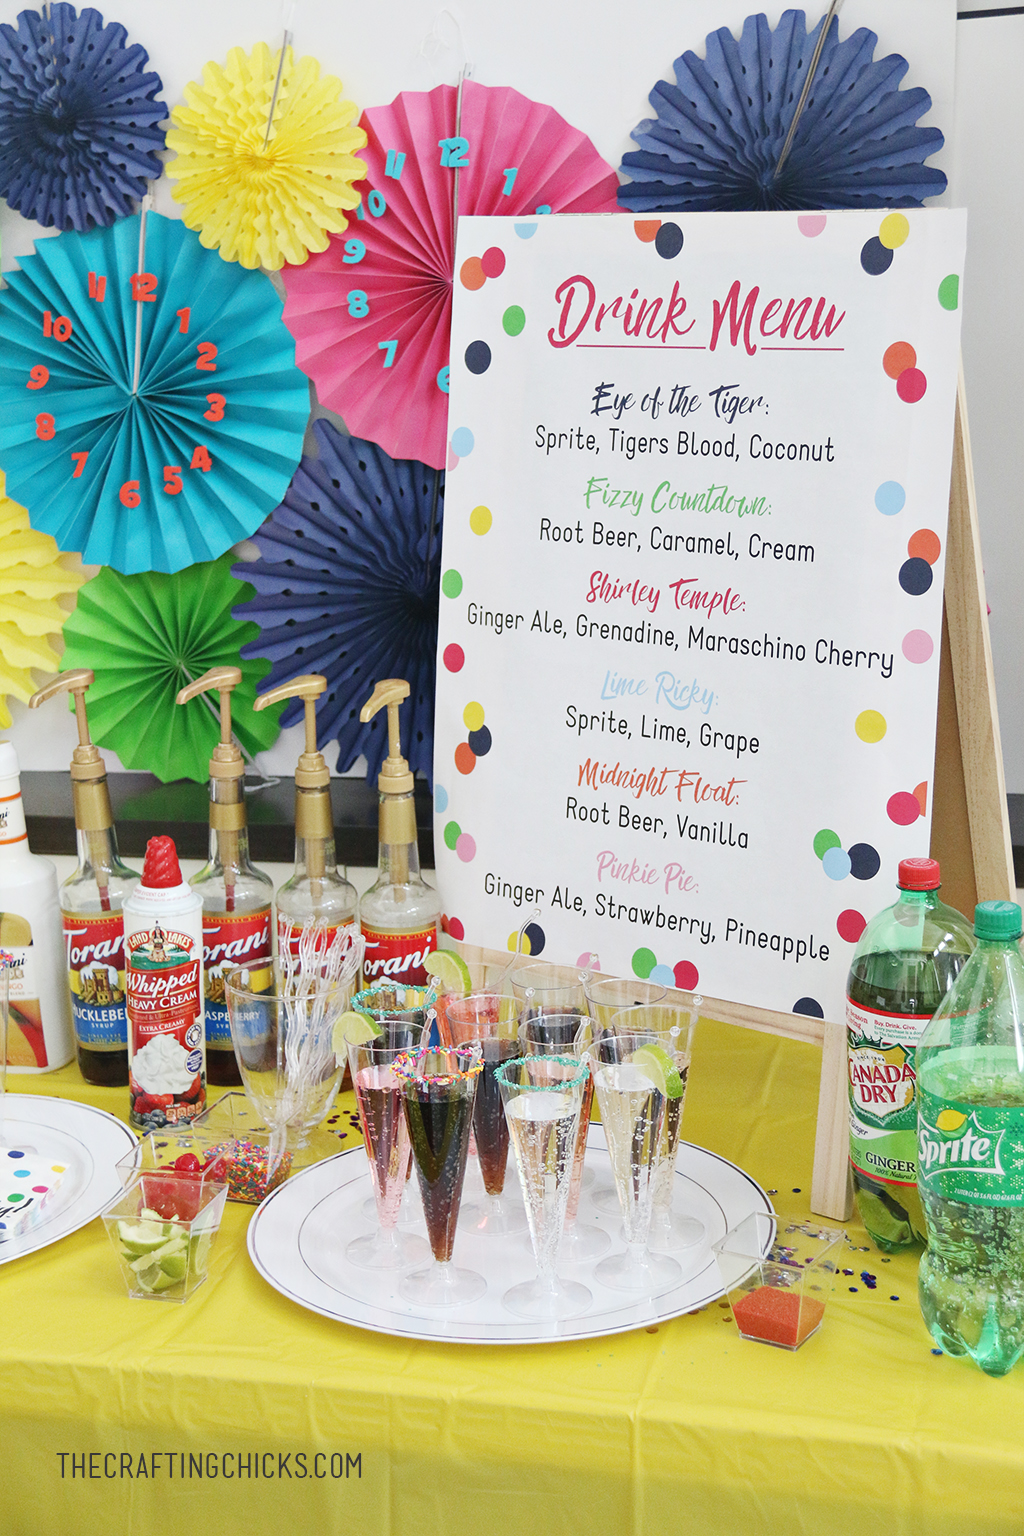 Mocktails for Kids' is a great way to ring in the New Year or any party. We added this fun Printable Kids' Mocktail Menu to our Noon Year's Eve Party that we threw our kids and it was a hit.